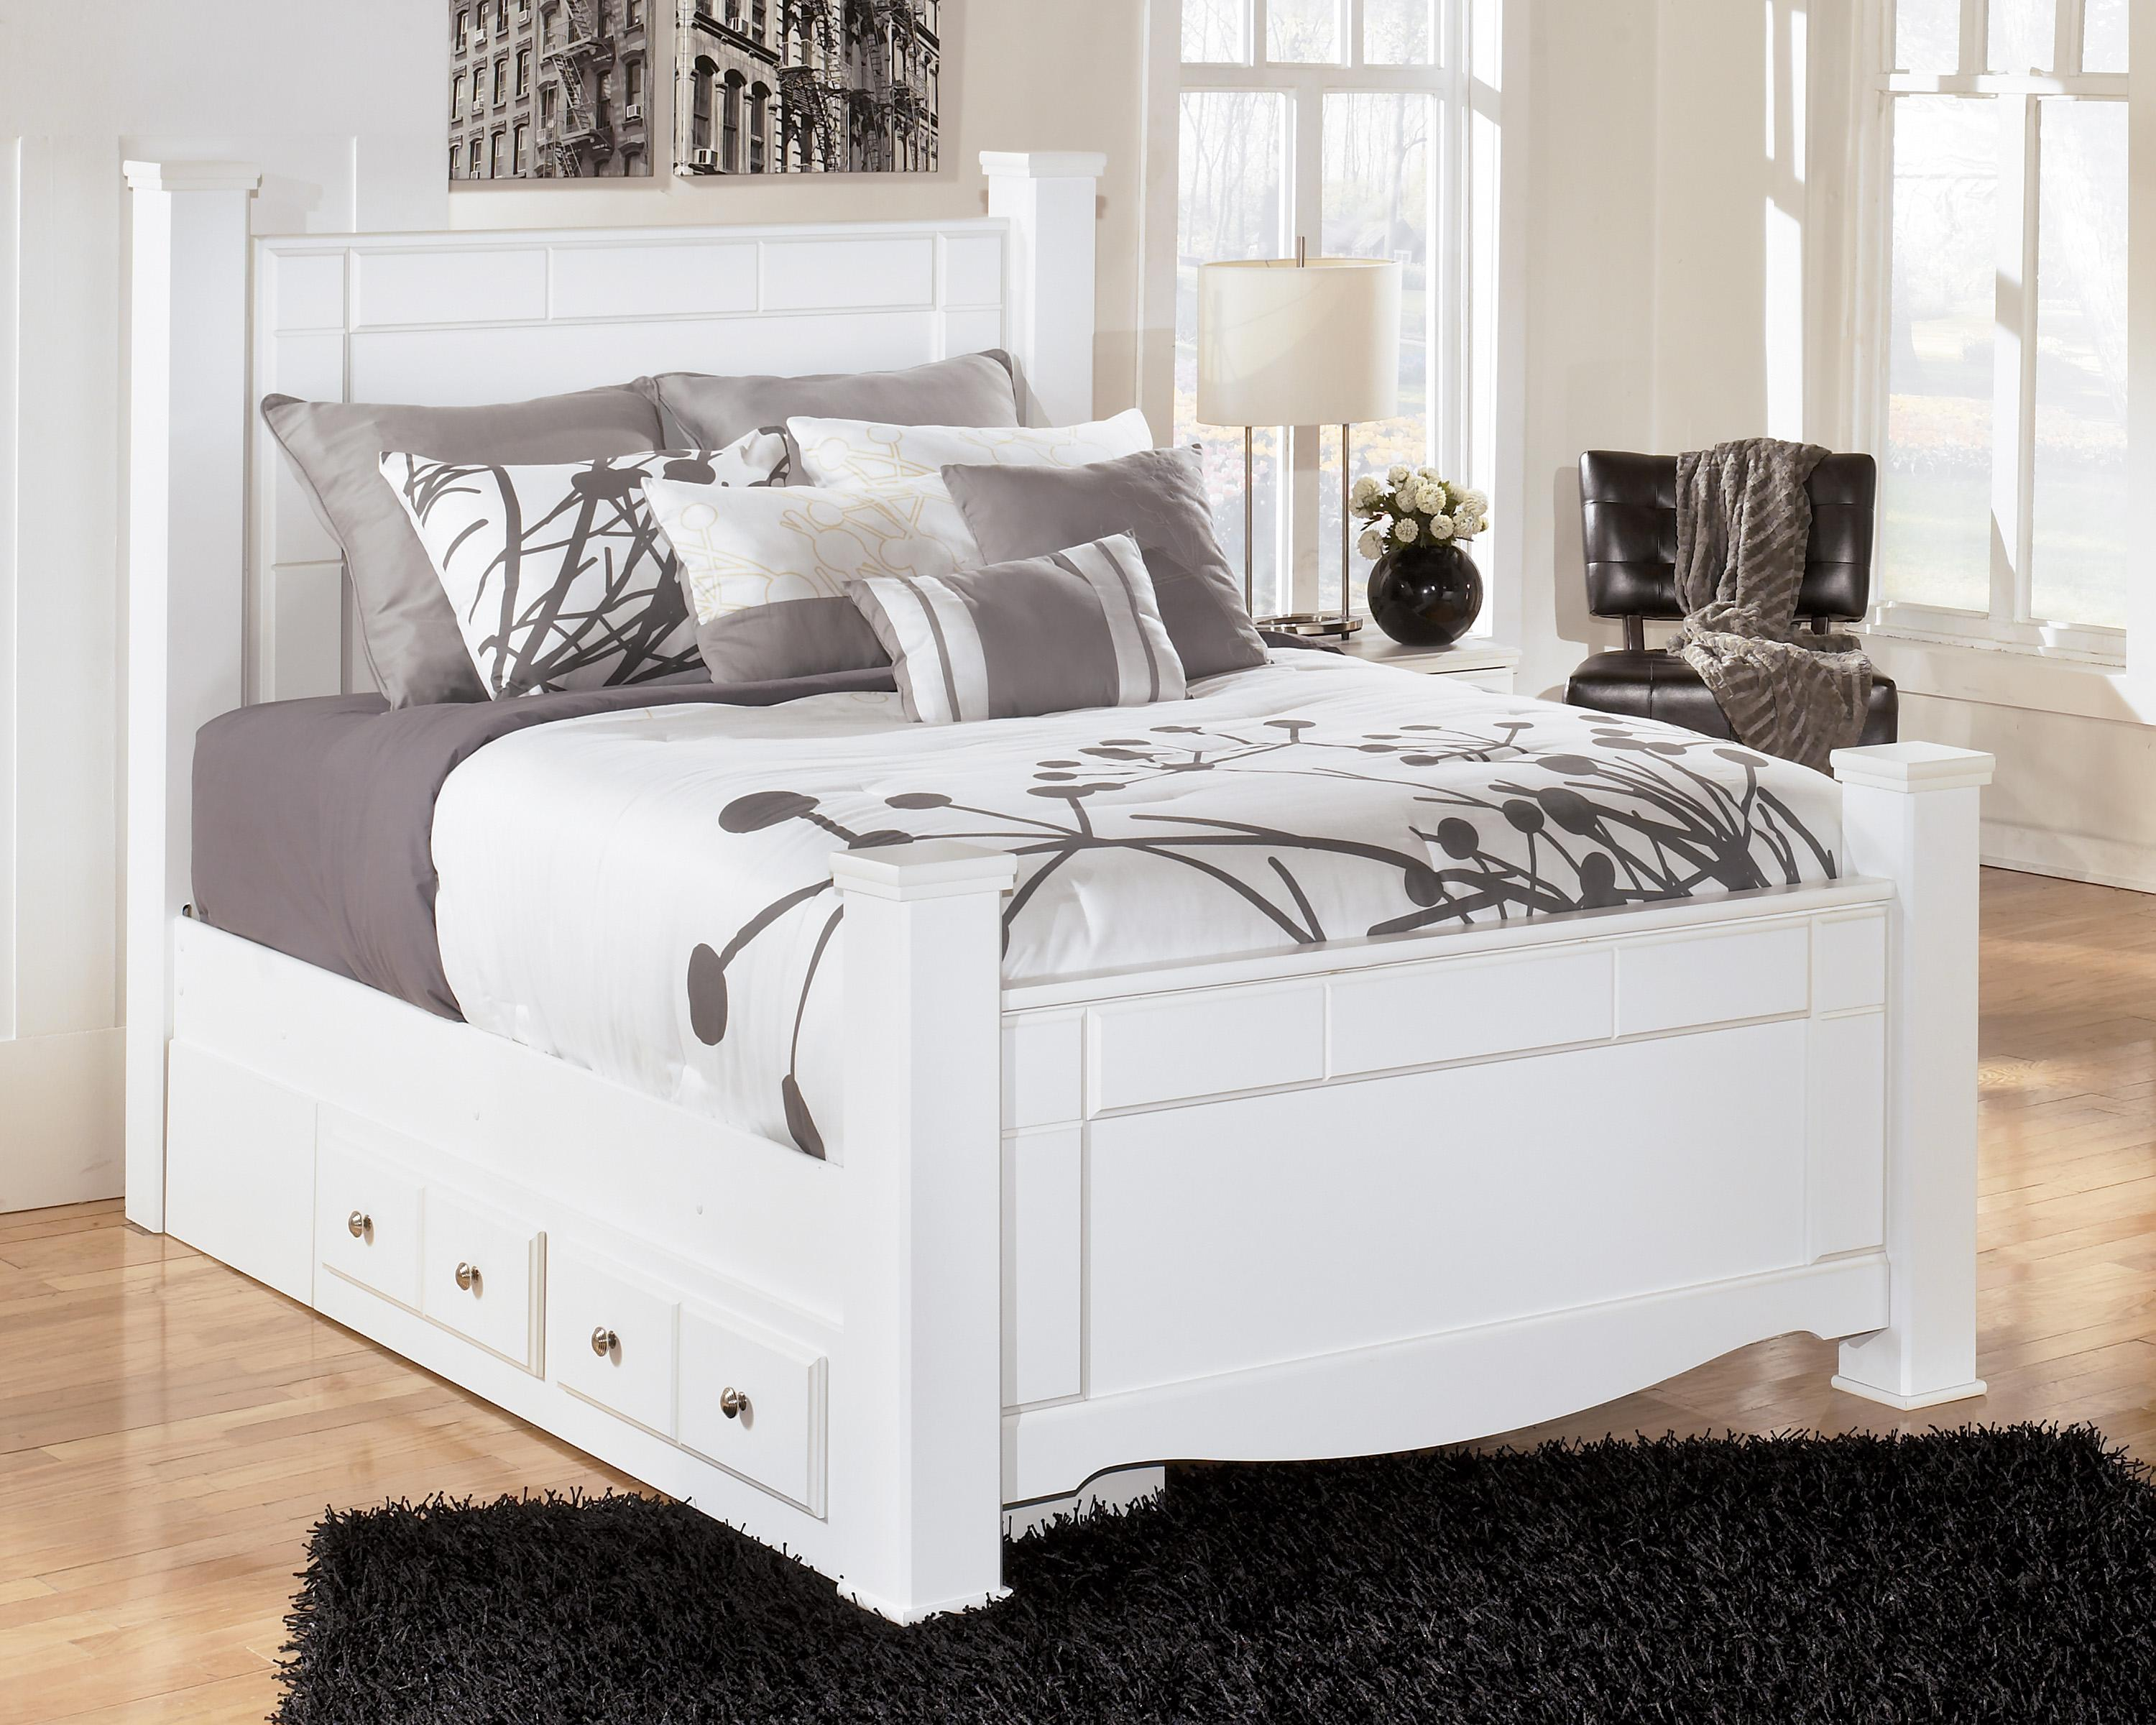 Signature design by ashley weeki queen poster bed with underbed storage household furniture Queen bedroom sets with underbed storage